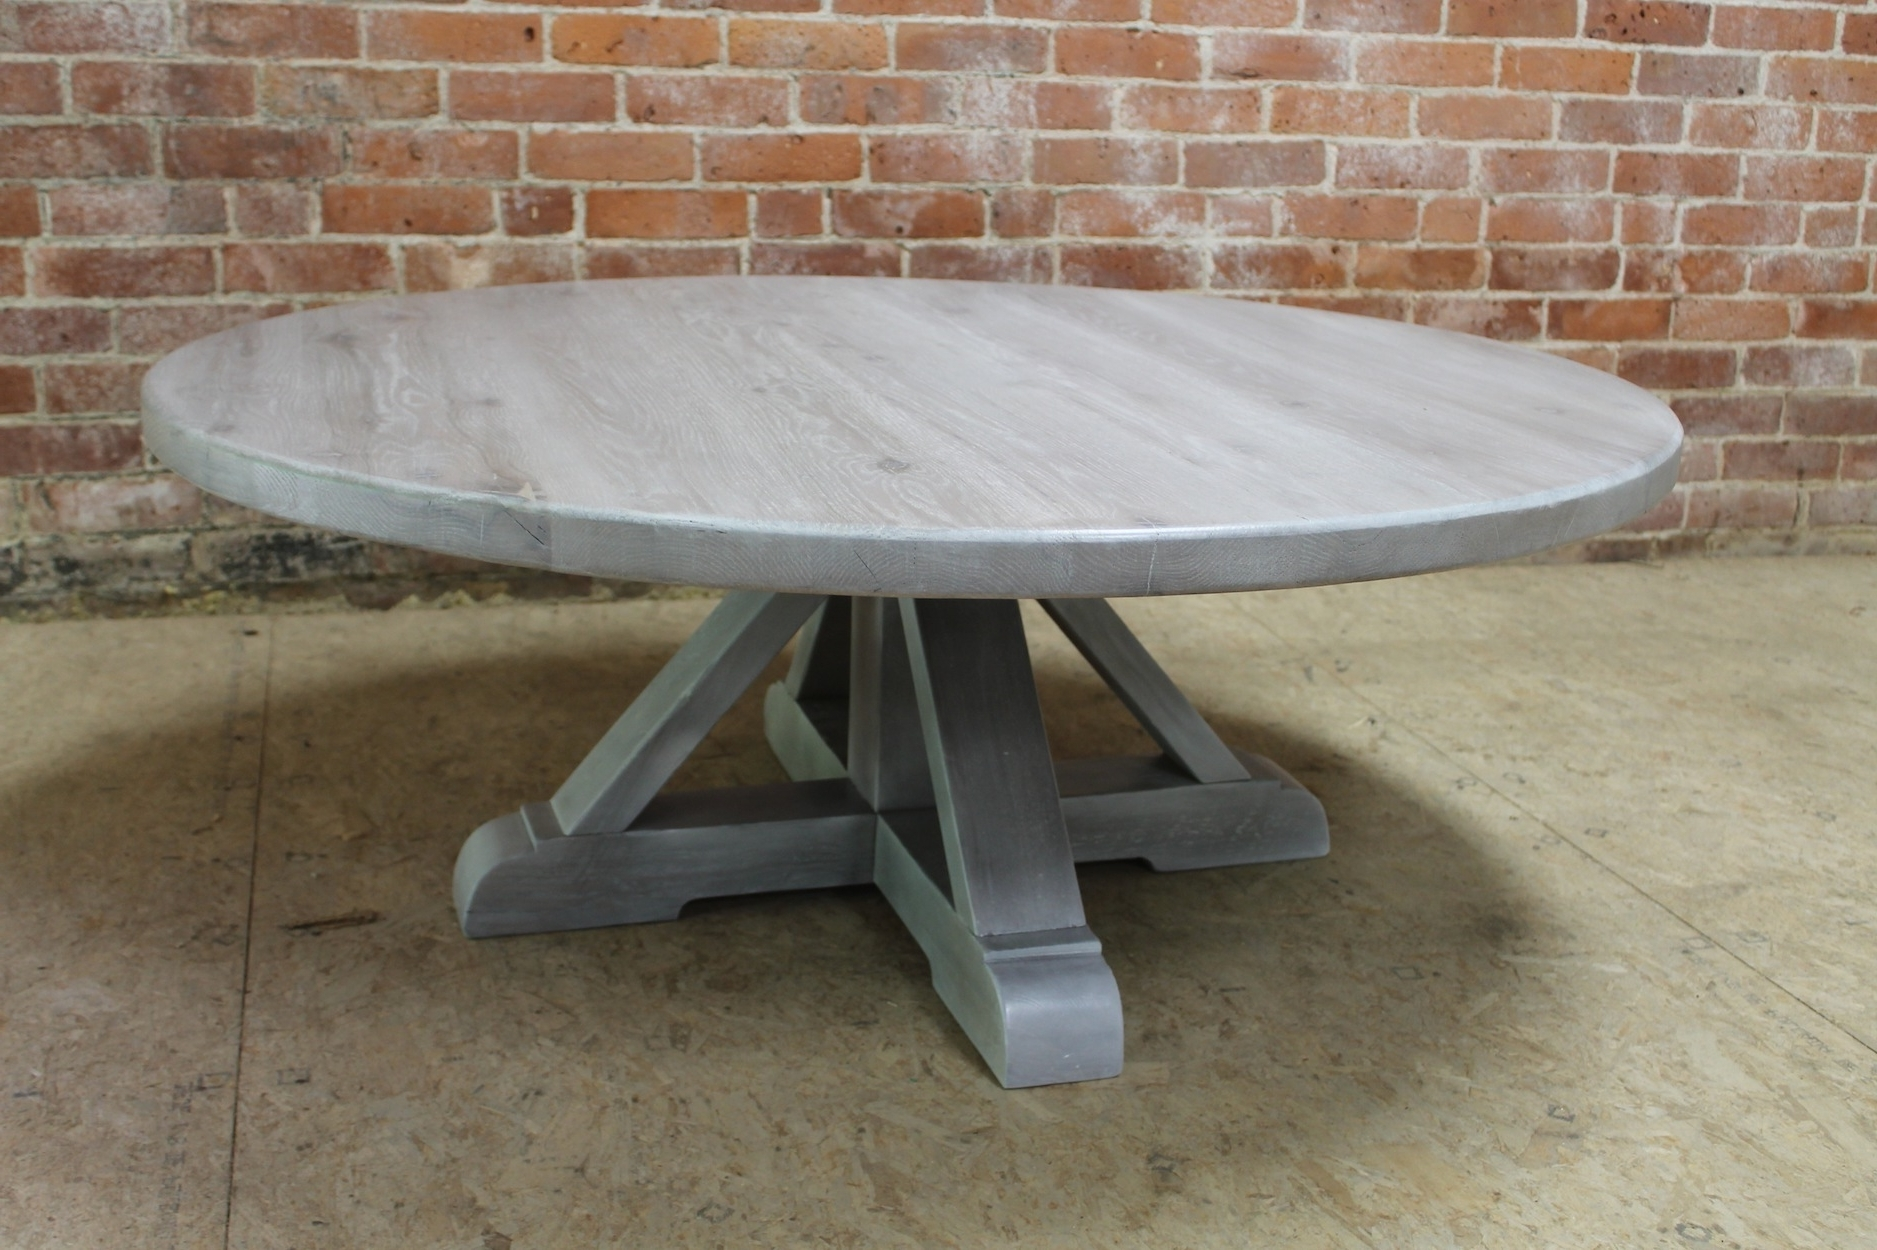 Farmhouse Coffee Tables Inside 2018 Bale Rustic Grey Round Cocktail Tables With Storage (View 5 of 20)